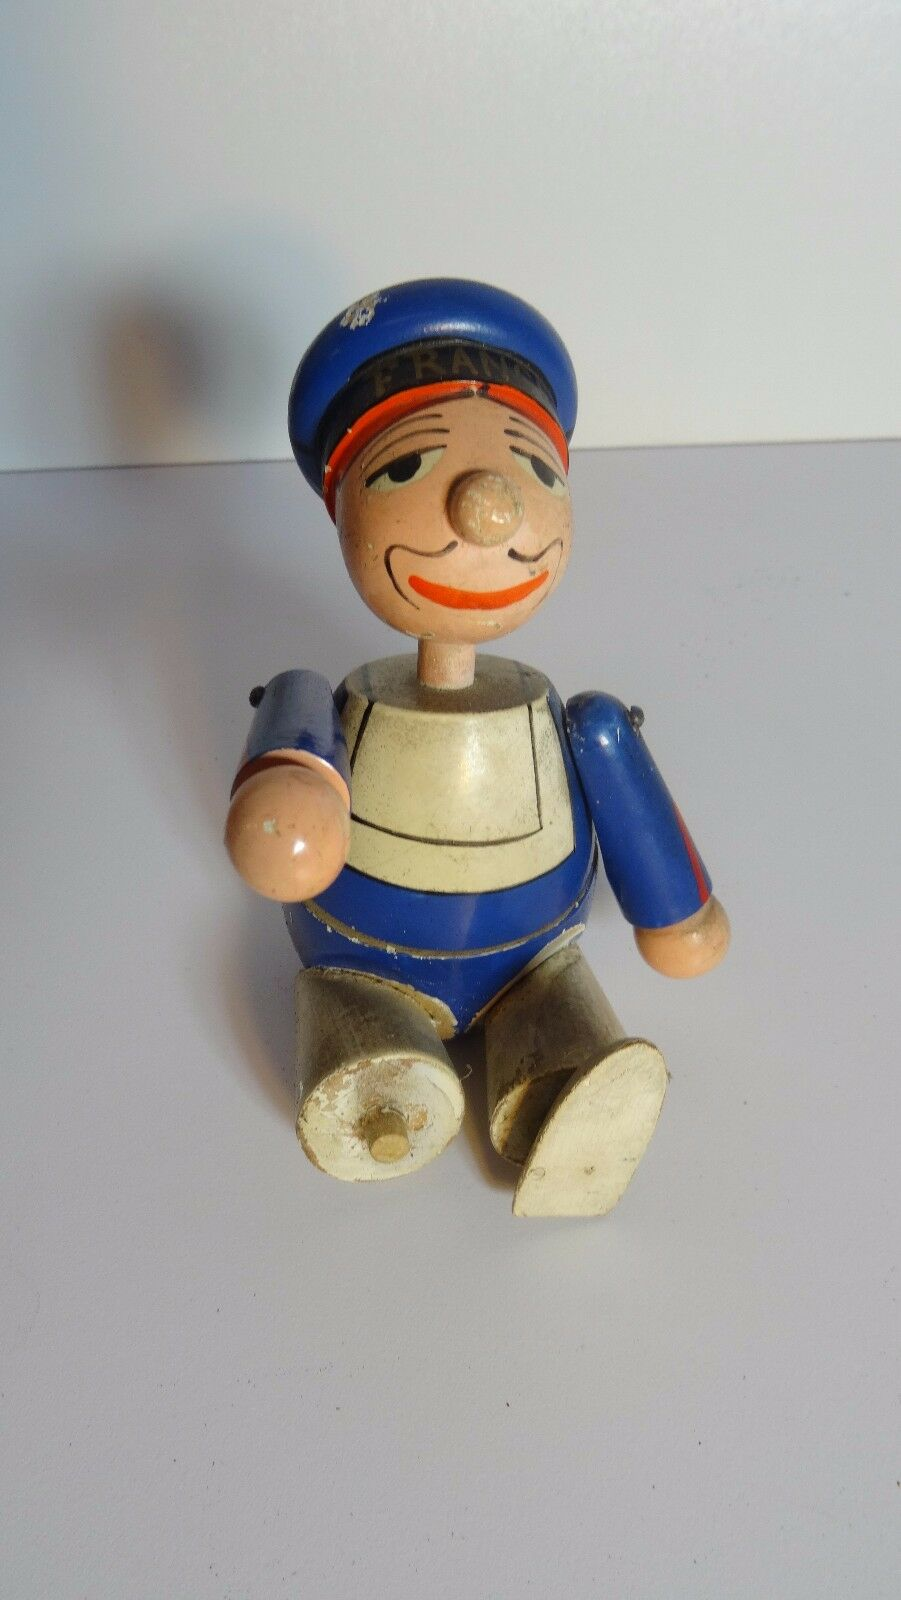 The France - Figurine Sailor Articulated Subject Wood Polychrome